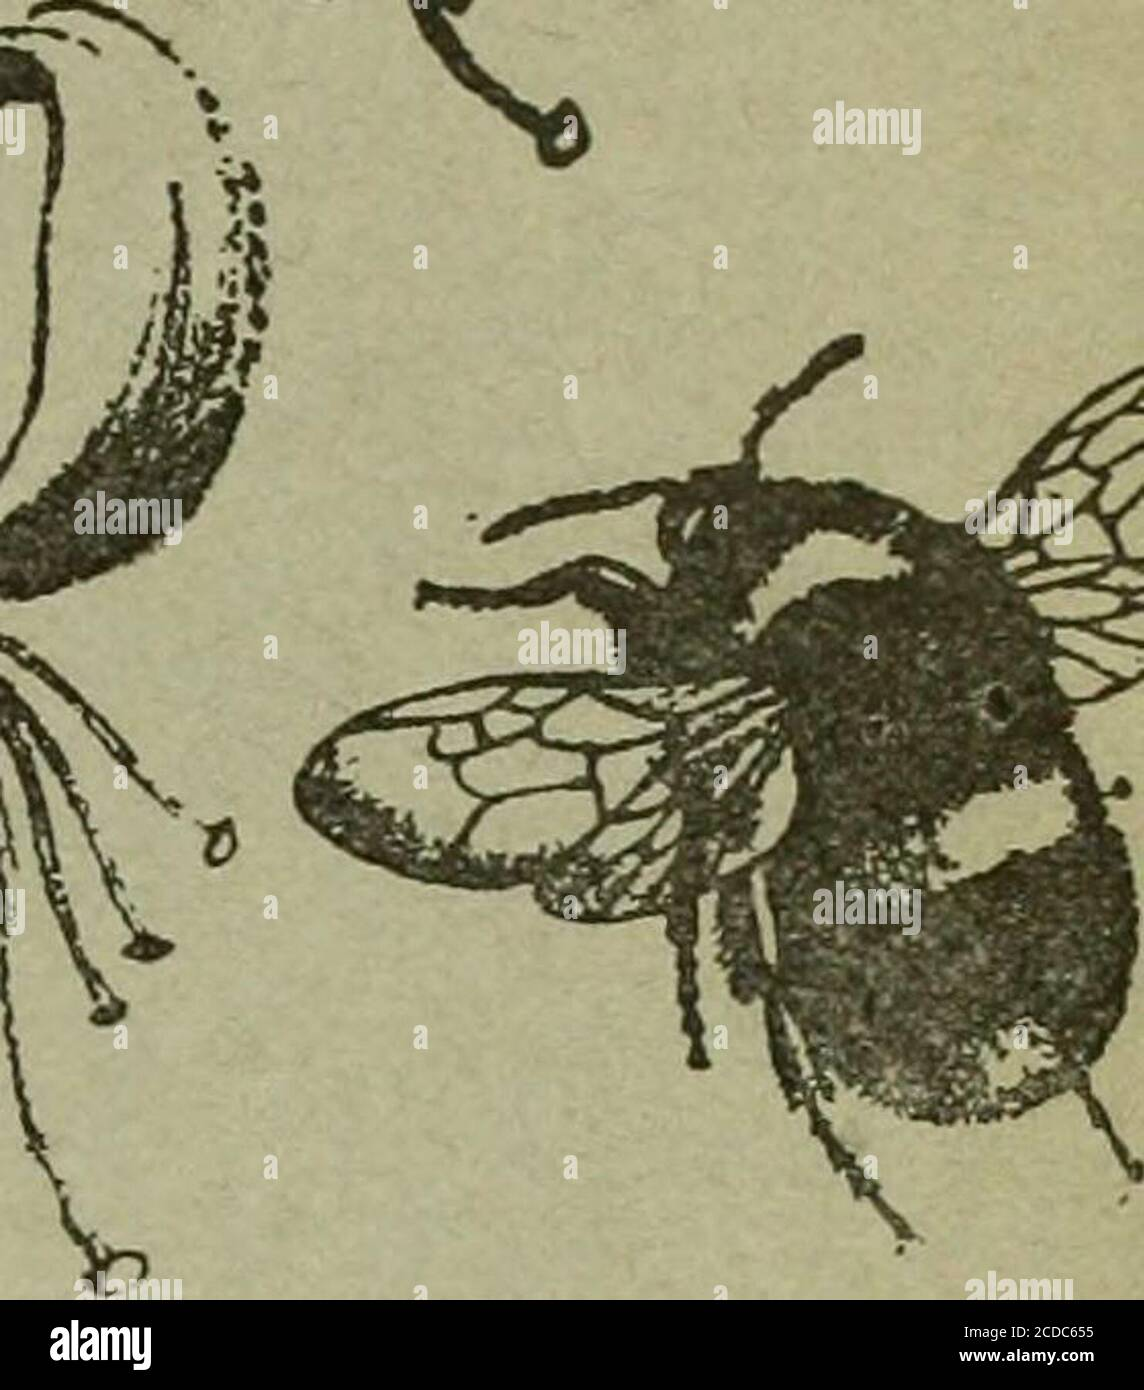 . The Entomologist's record and journal of variation . THE ENTOMOLOGISTS RECOP AND JOURNAL OF VARIATIO; Edited by J. W. TUTT, F.E.S. Assisted by T HUDSON BEARE, b.sc, f.e.s., i.h.s.e. dvn^n-p T BETHUNE-BAKER, r.z.s. f.l.s., f.e.s. BURR B°tc!Fz:s:F.i.t:.F.K.s. (rev.) b. r. n. burrows, F • JasE COLLIN, F.E.S. T. A. CHAPMAN h.d., ^??^^?^^?^?^H St J K DONIBTHORPE, F.z.s.. f.e.s. Alfred SIOH, F.eGeorge WHEELER, m.a., f.e.s. OCTOBEB Idih, 1909. Stock Photo